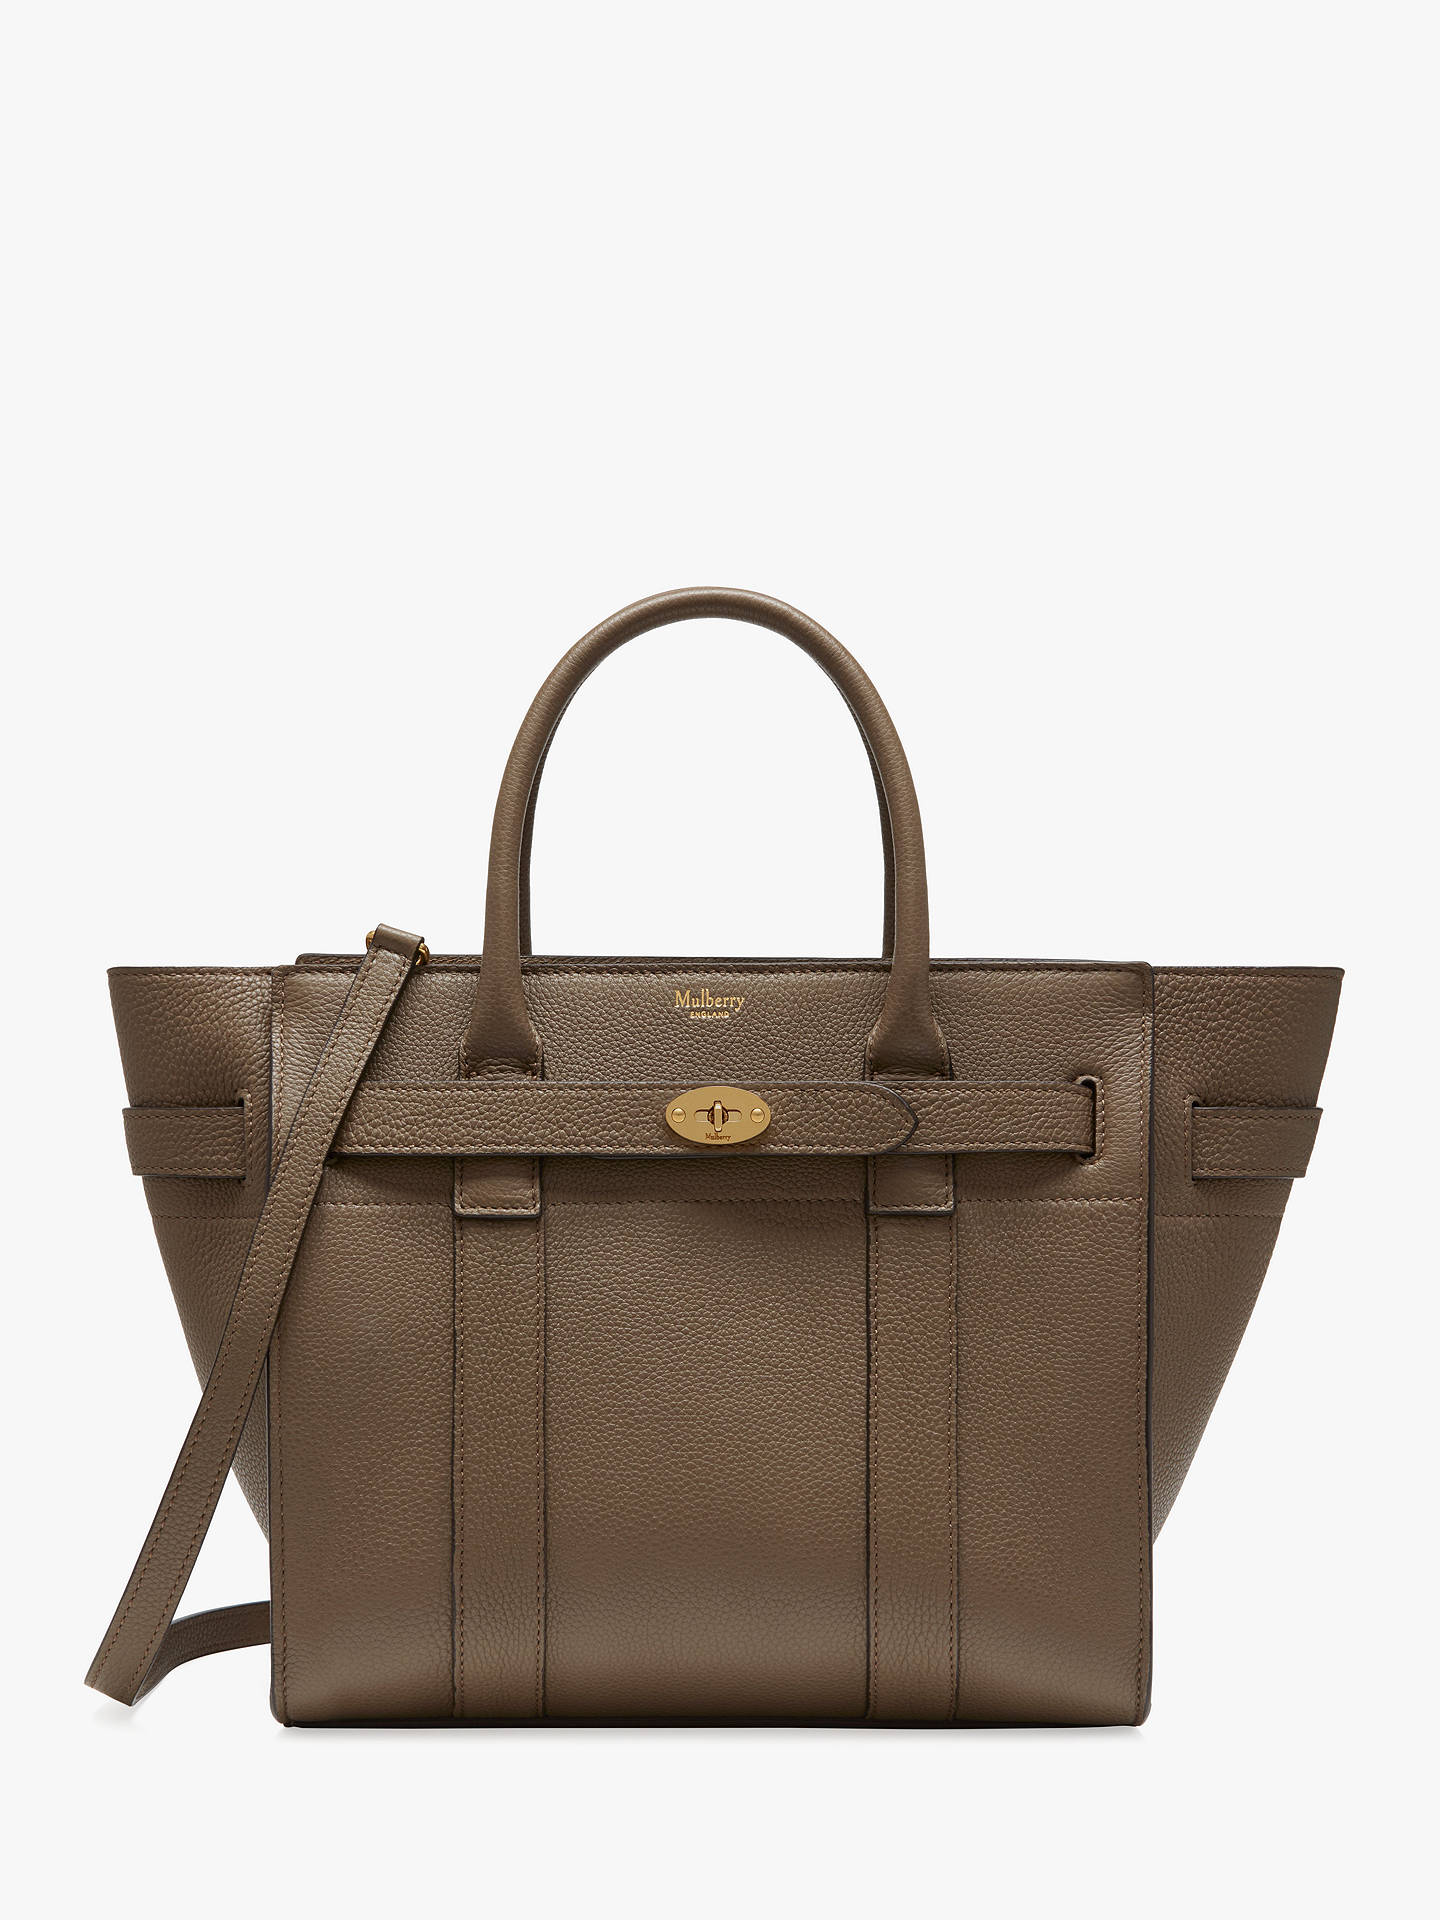 687afcb4b Buy Mulberry Small Bayswater Zipped Classic Grain Leather Tote Bag, Clay  Online at johnlewis.